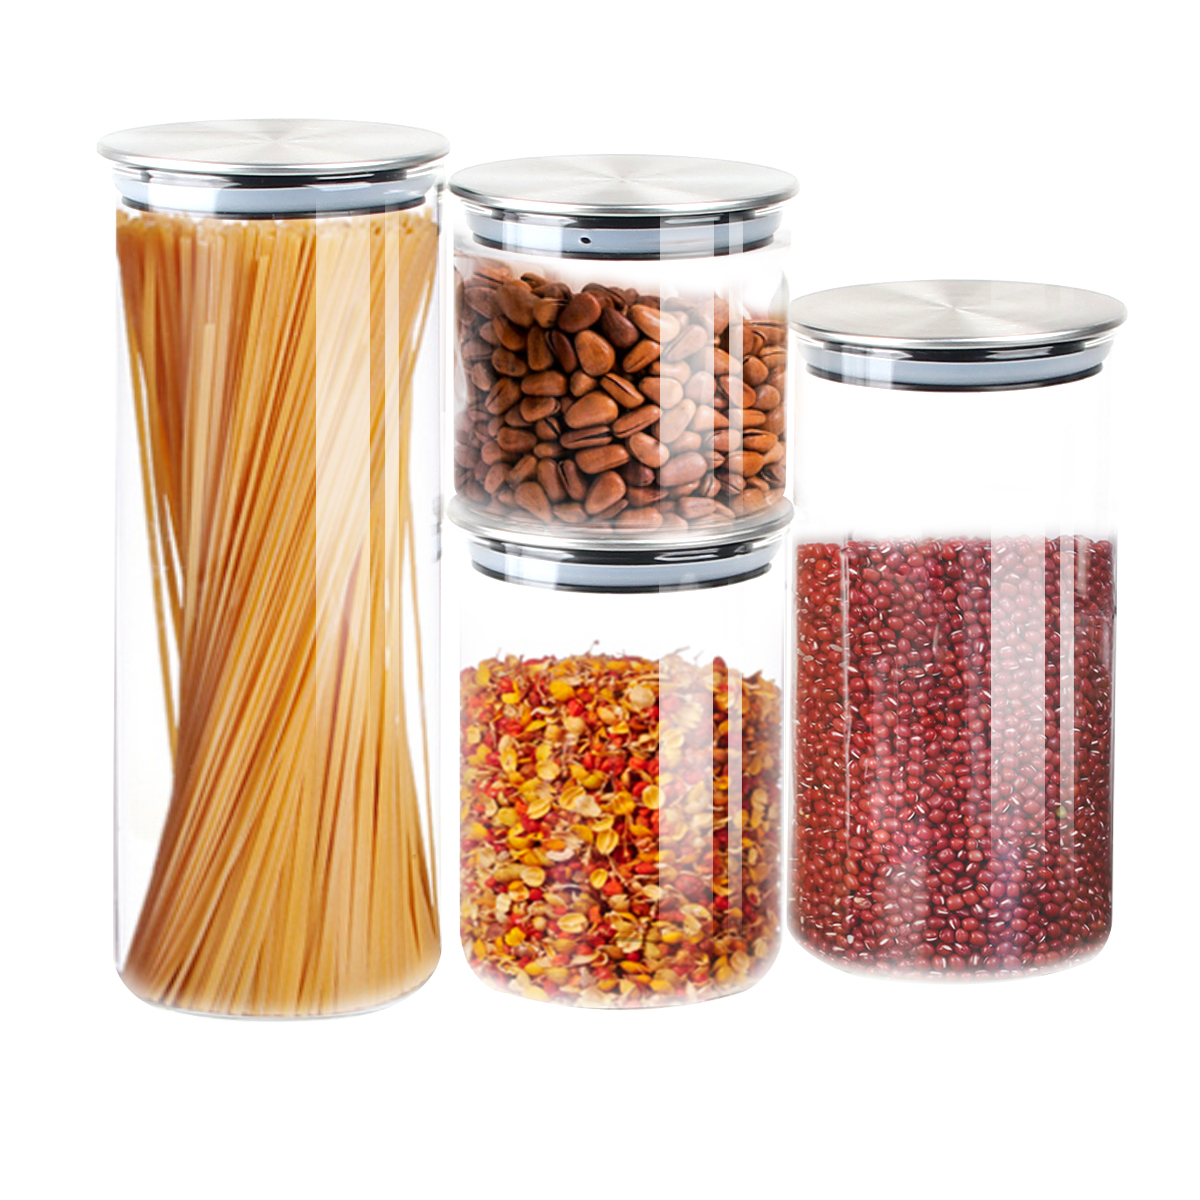 Details about 4 Pcs Glass Kitchen Heat Resistant Food Storage Container Set  Cereal Storage Jar